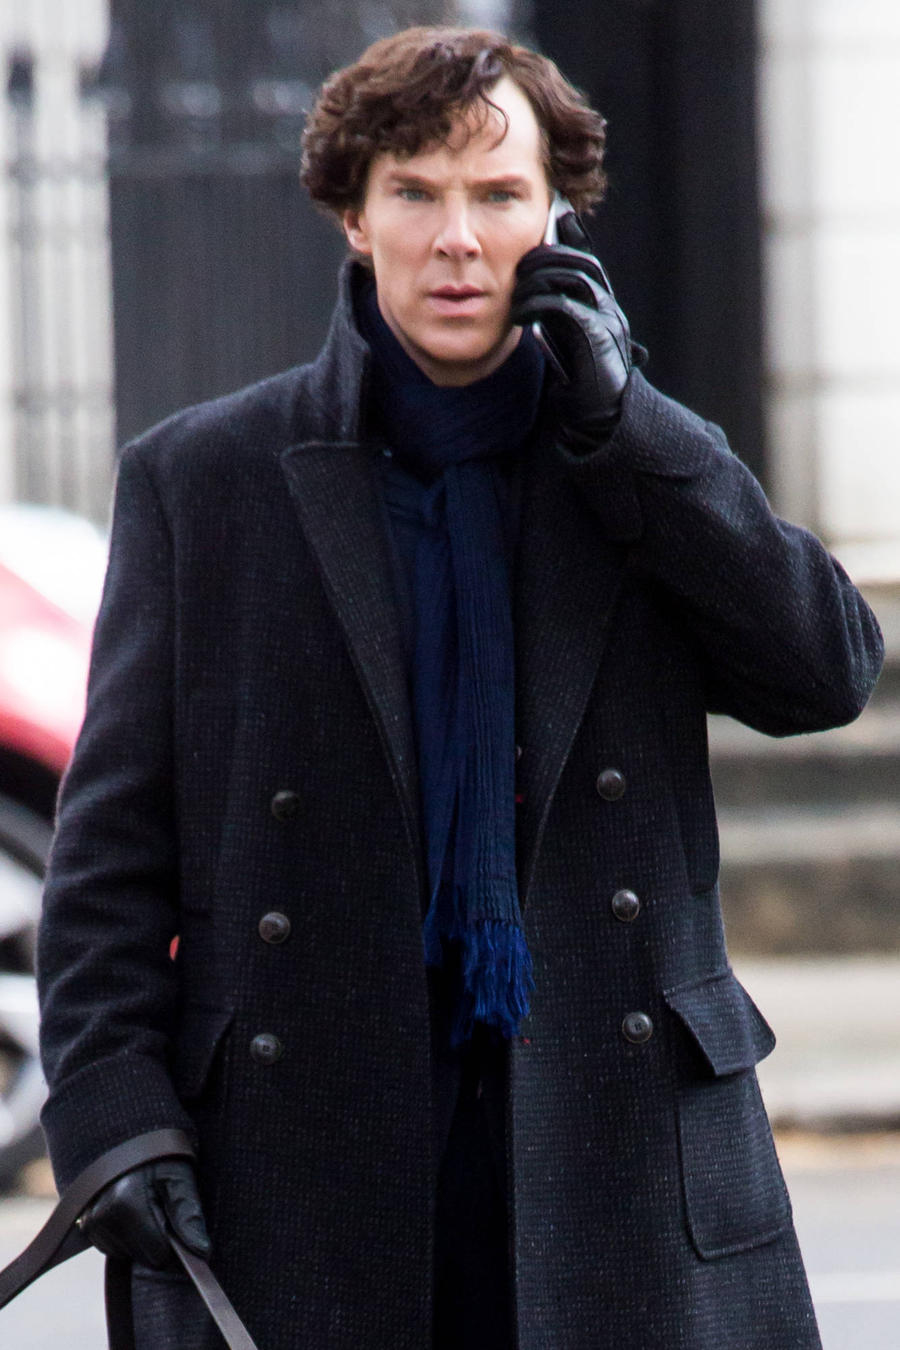 Benedict Cumberbatch Frightened By Fans' Conspiracy Theories